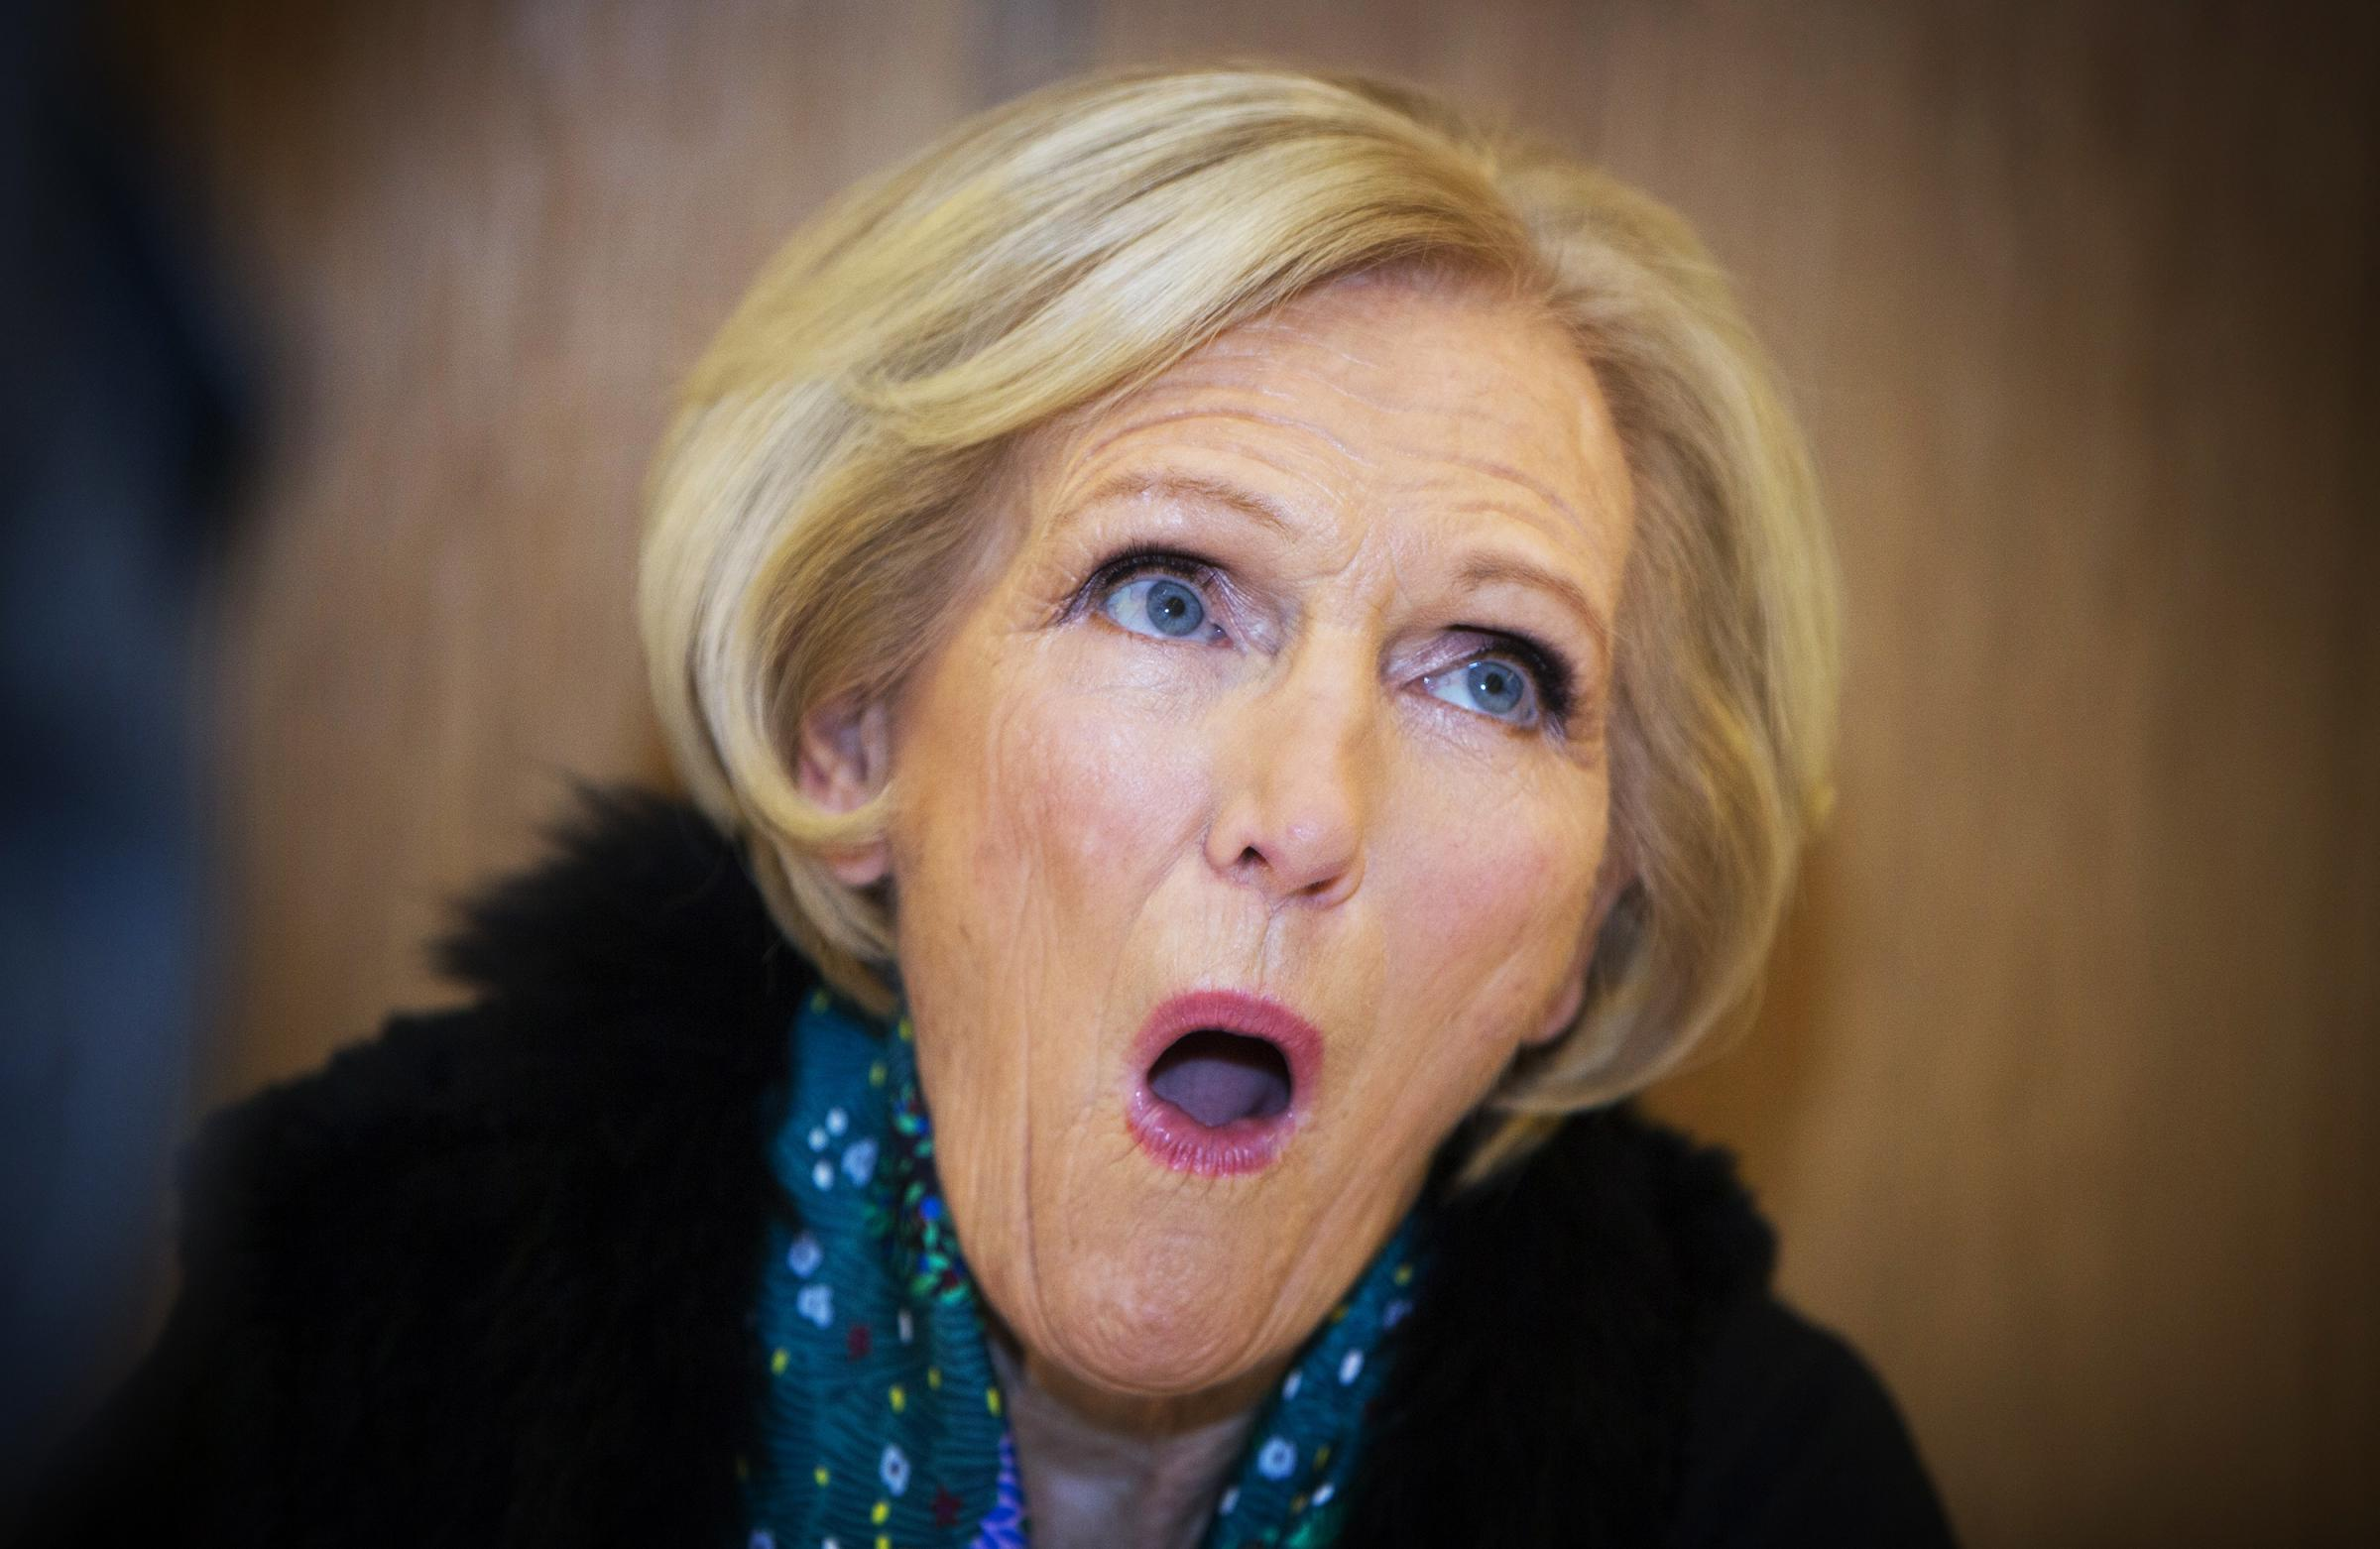 Mary Berry to bring 'scrumptious' baking tips and meet fans at festival